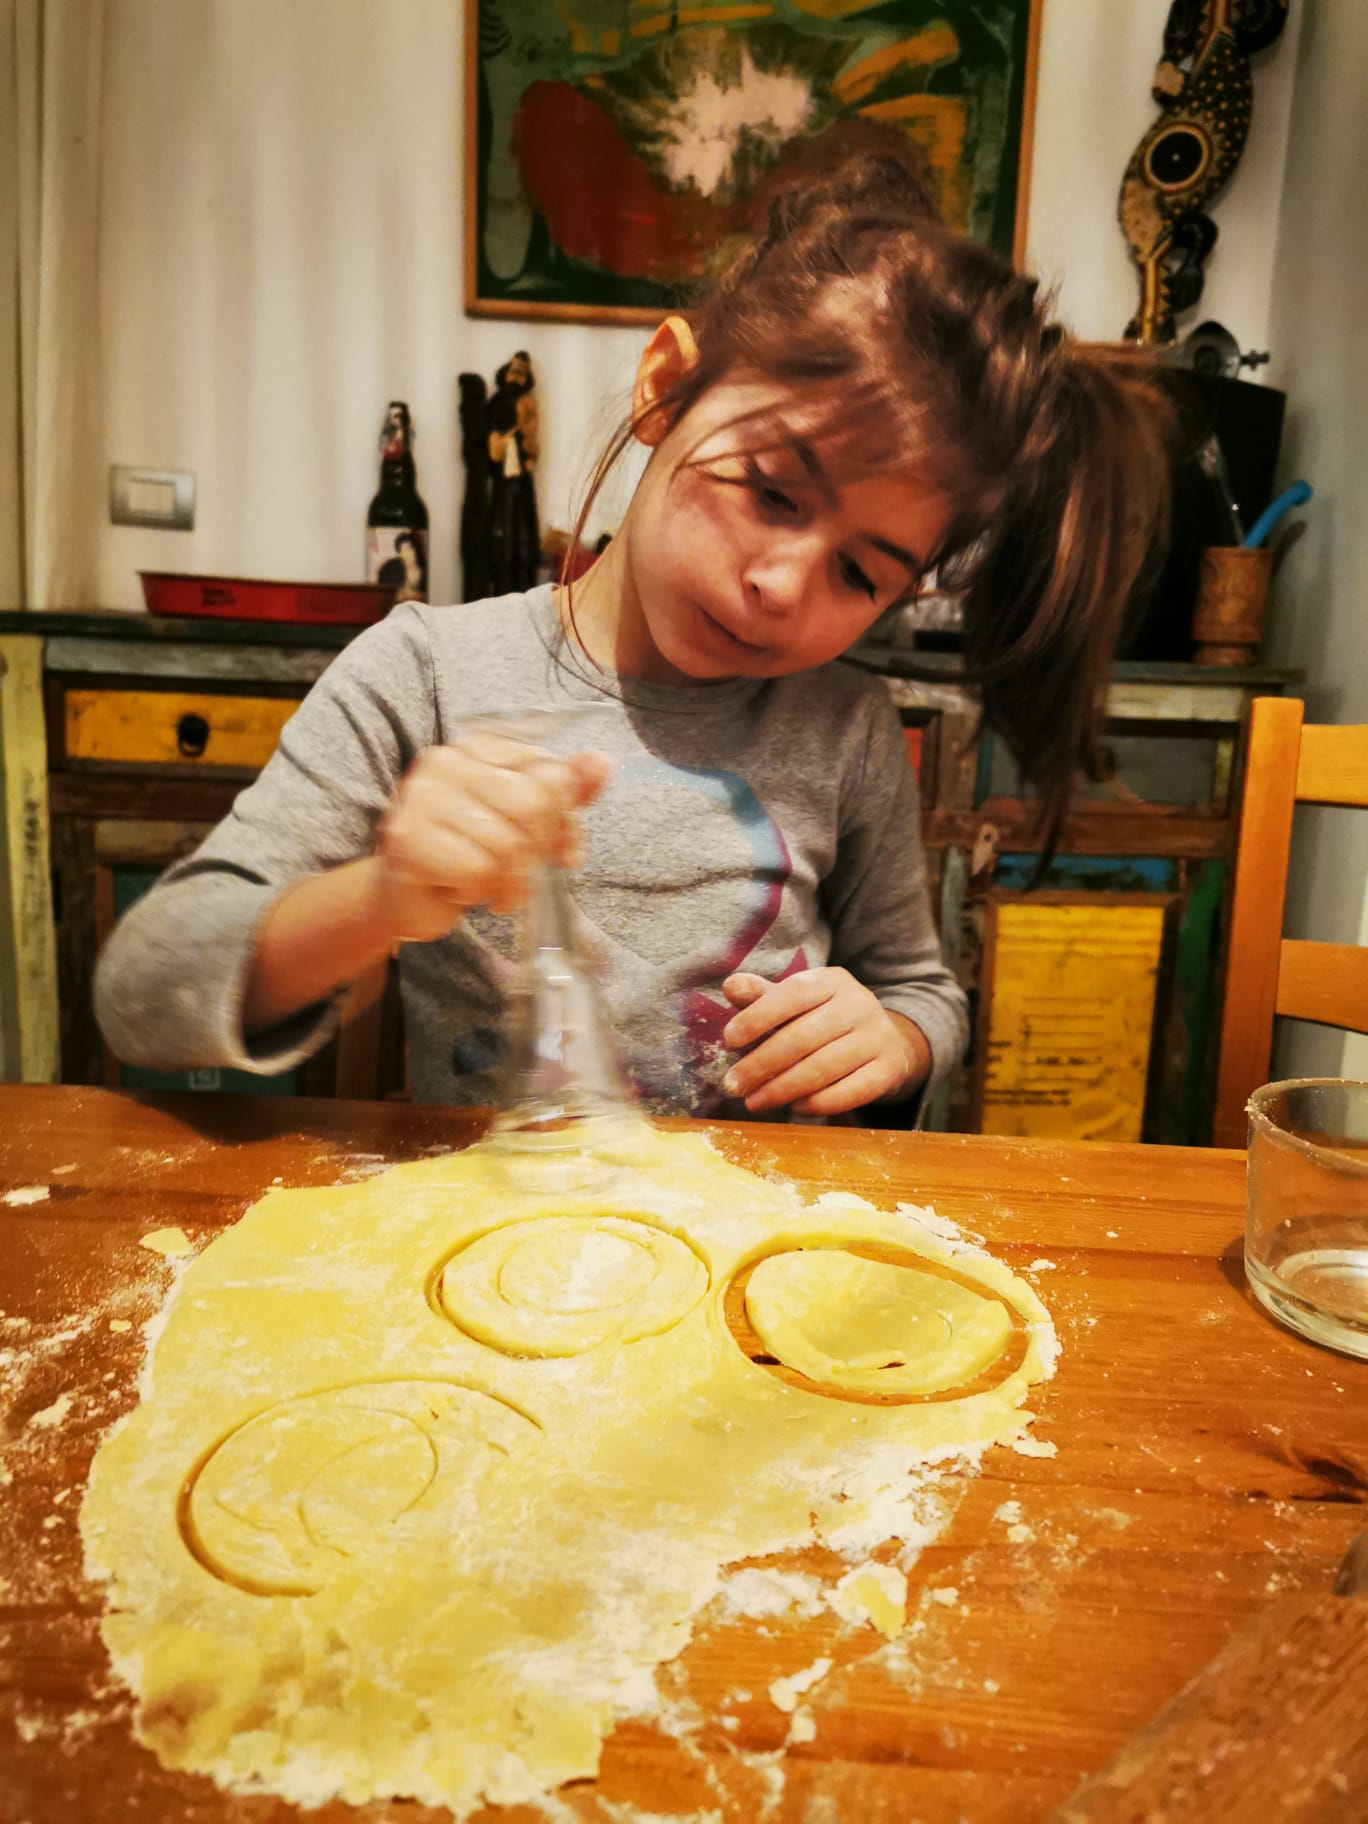 We all love to make homemade pasta